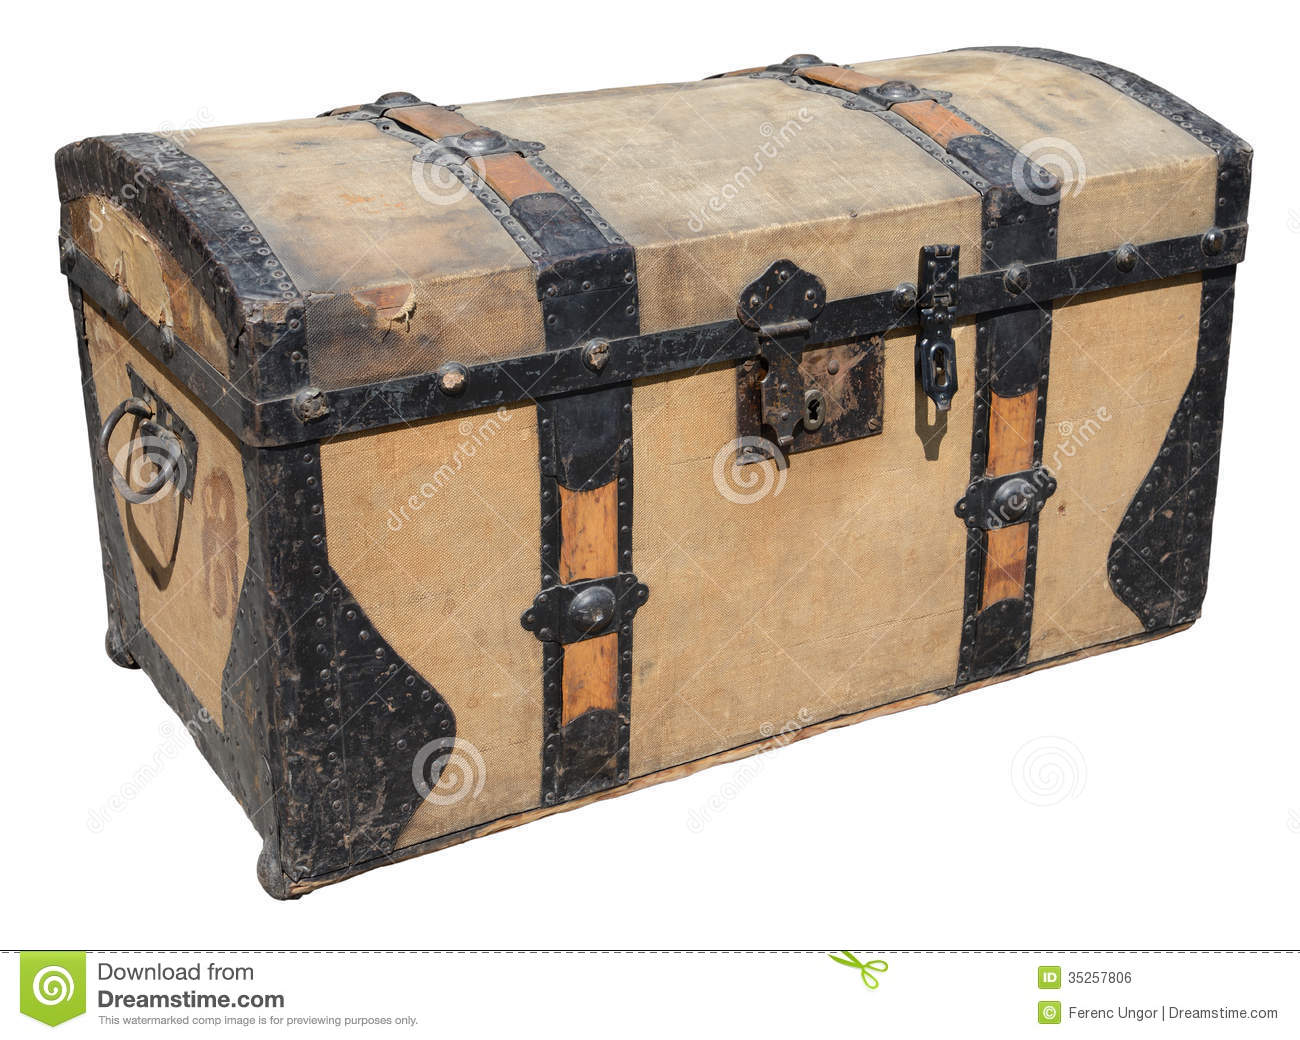 Royalty Free Stock Image Old Travel Box Wooden Trunk Metal Elements Isolated White Image35257806 on large metal storage box